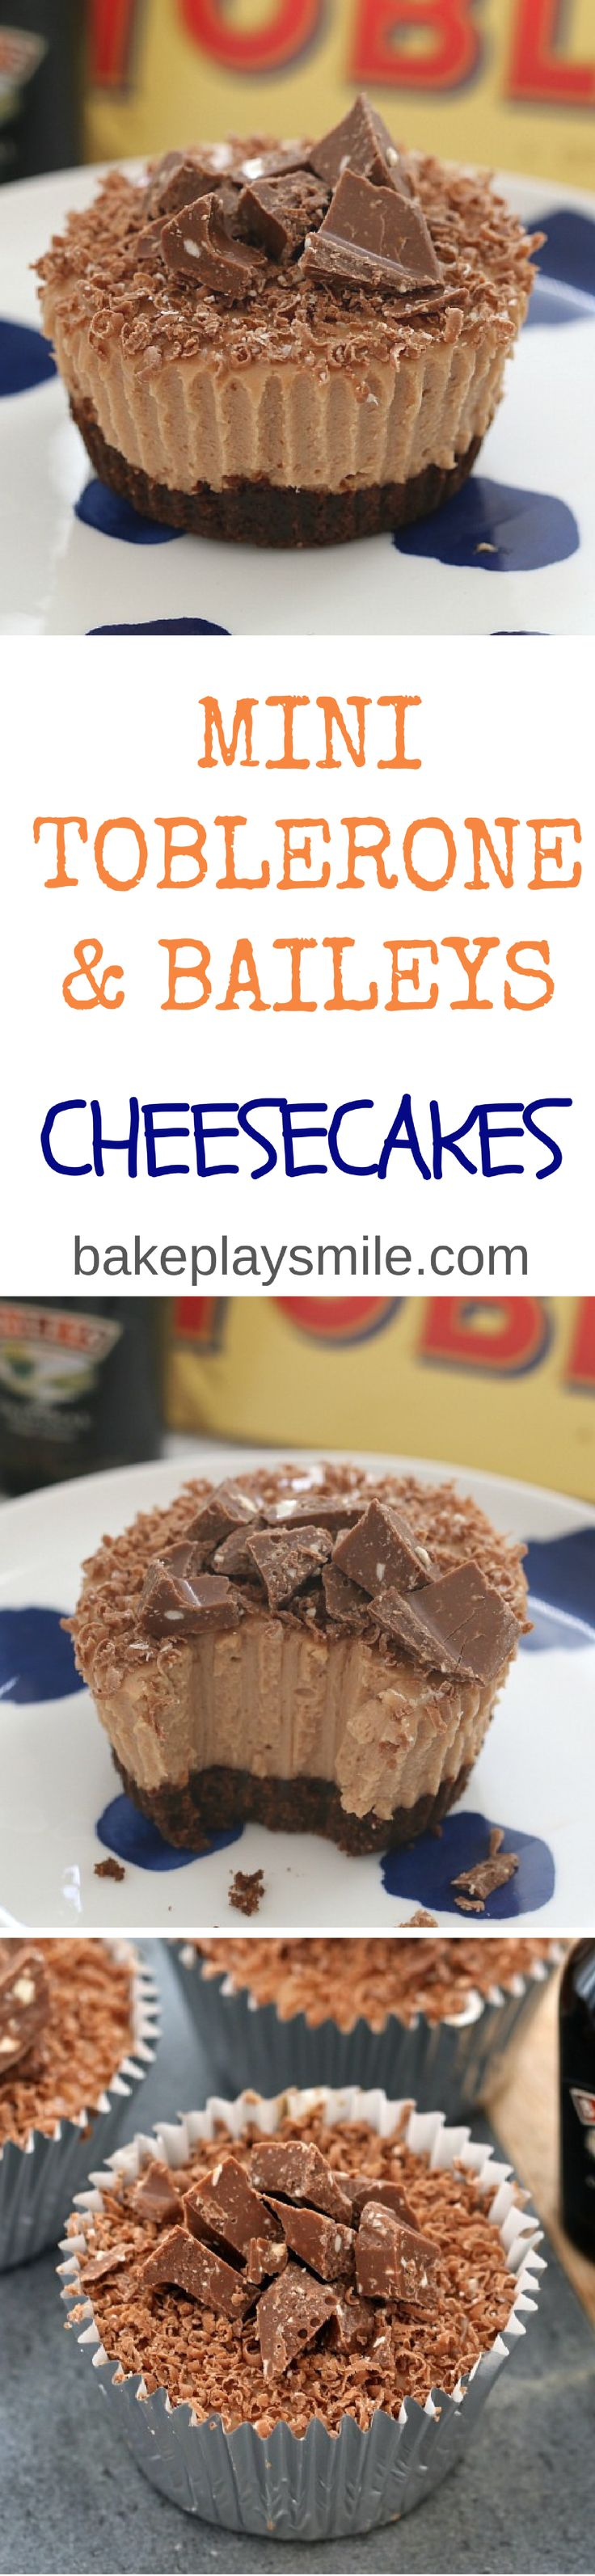 These Mini Toblerone & Baileys Cheesecakes are so naughty… and totally delicious! Best of all, they're completely no-bake!  #toblerone #baileys #nobake #cheesecake #cheesecakes #easy #delicious #chocolate #Thermomix #conventional #recipe #party